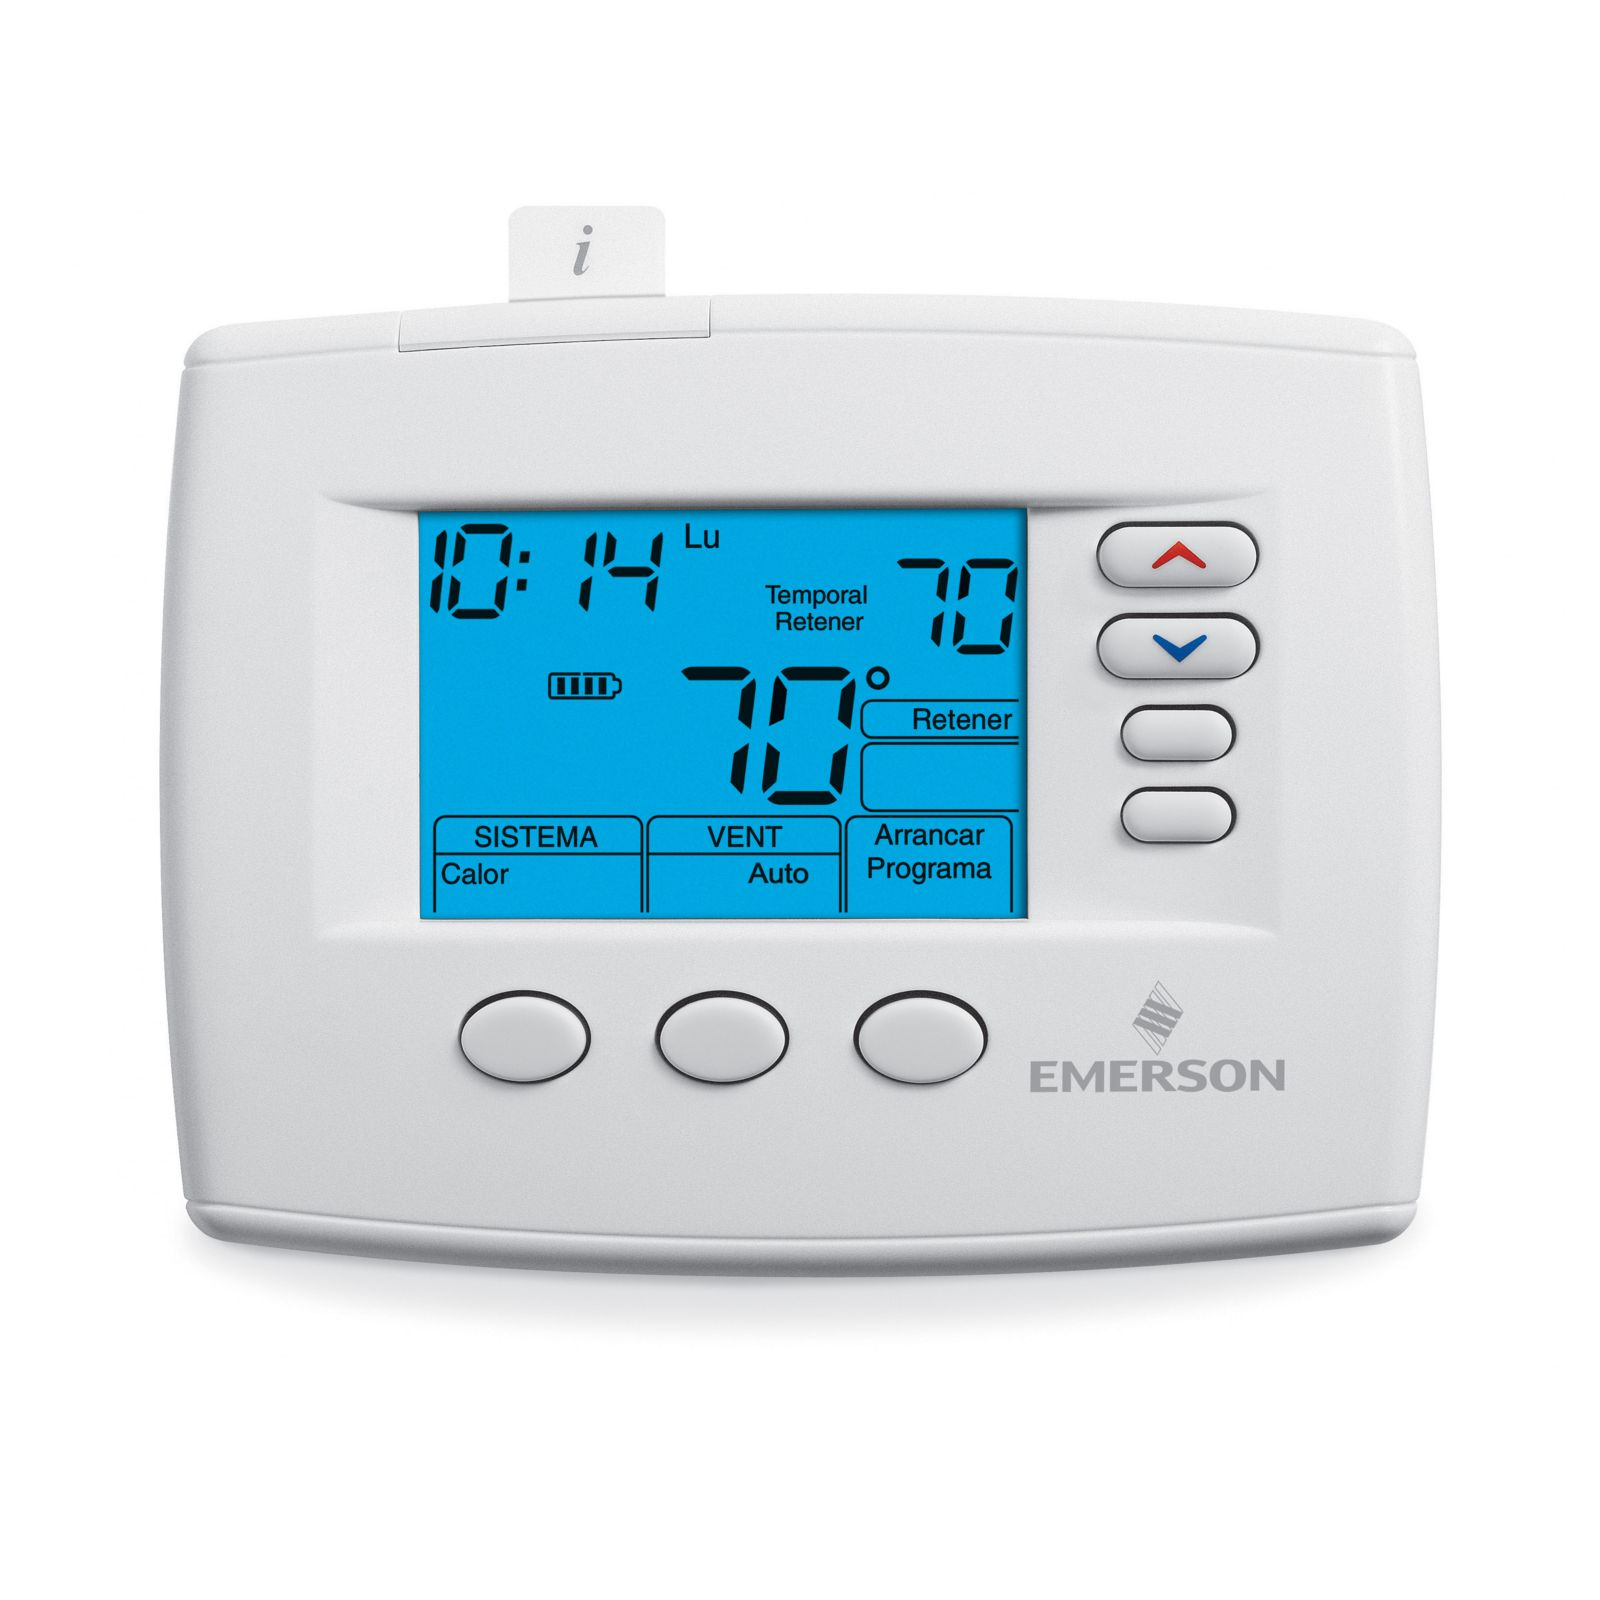 Emerson Climate 1F85ST-0422 -  Emerson Blue Selecto Spanish Language Thermostat